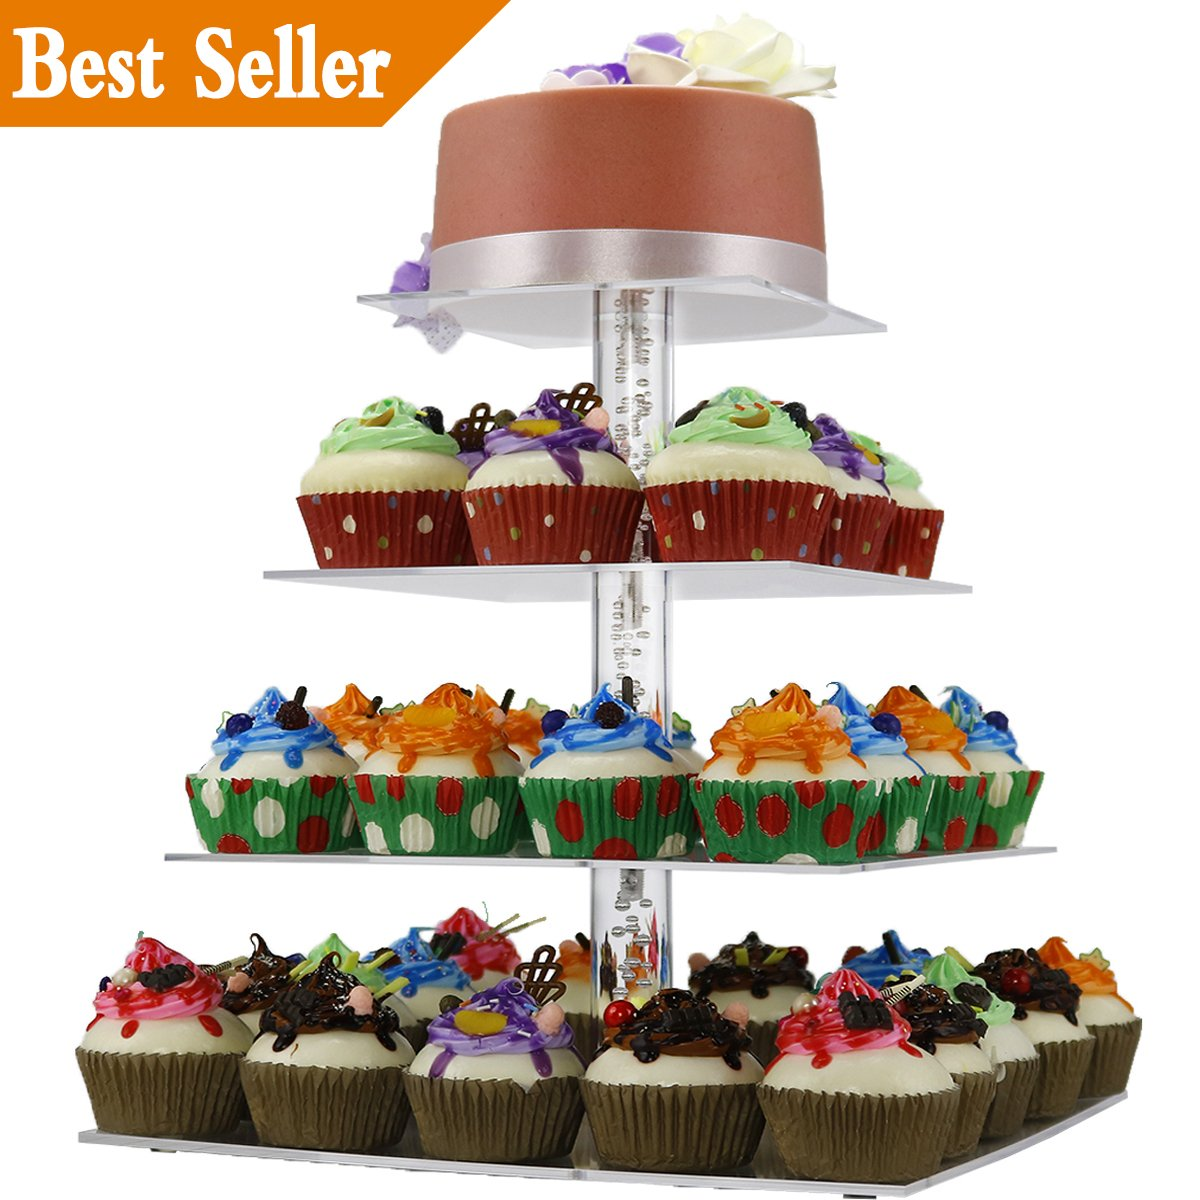 DYCacrlic Cake Stand,2018 New Style 4 Tier Square Cupcake Stand,Clear Acrylic Stacked Party Cupcake Tree,Tiered Cupcake Tower for Wedding,Happy Birthday,Parties